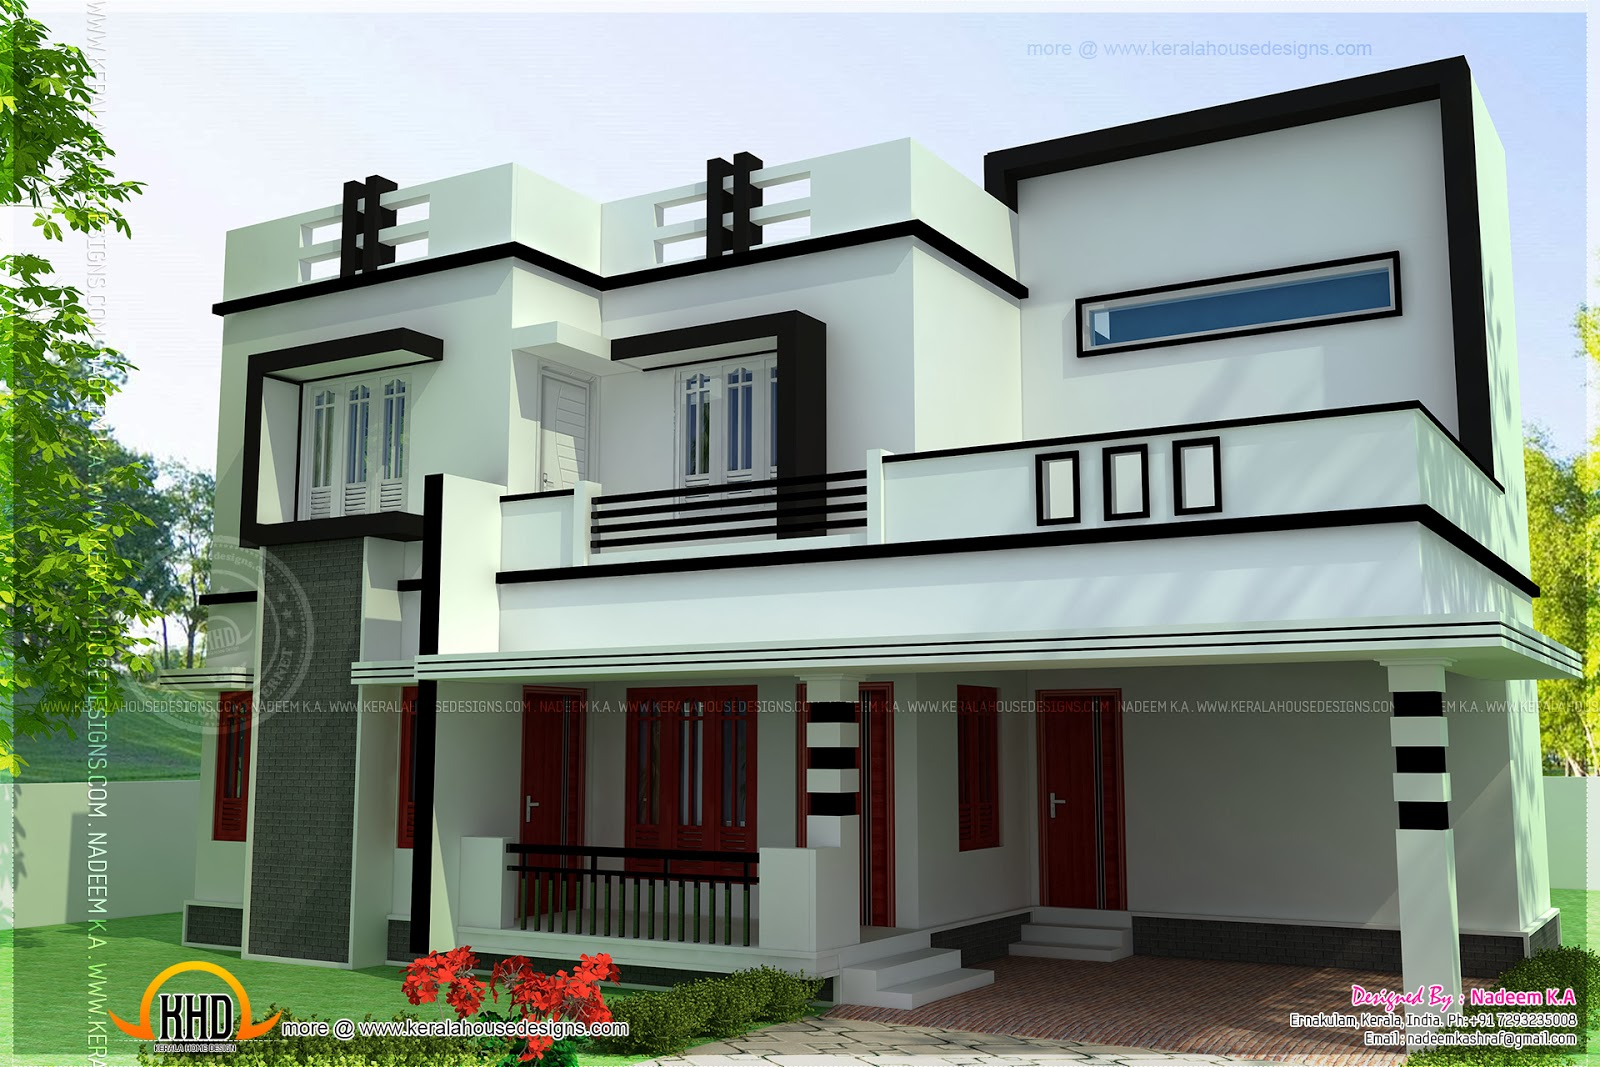 Flat roof 4 bedroom modern house kerala home design and for Modern house layout plans